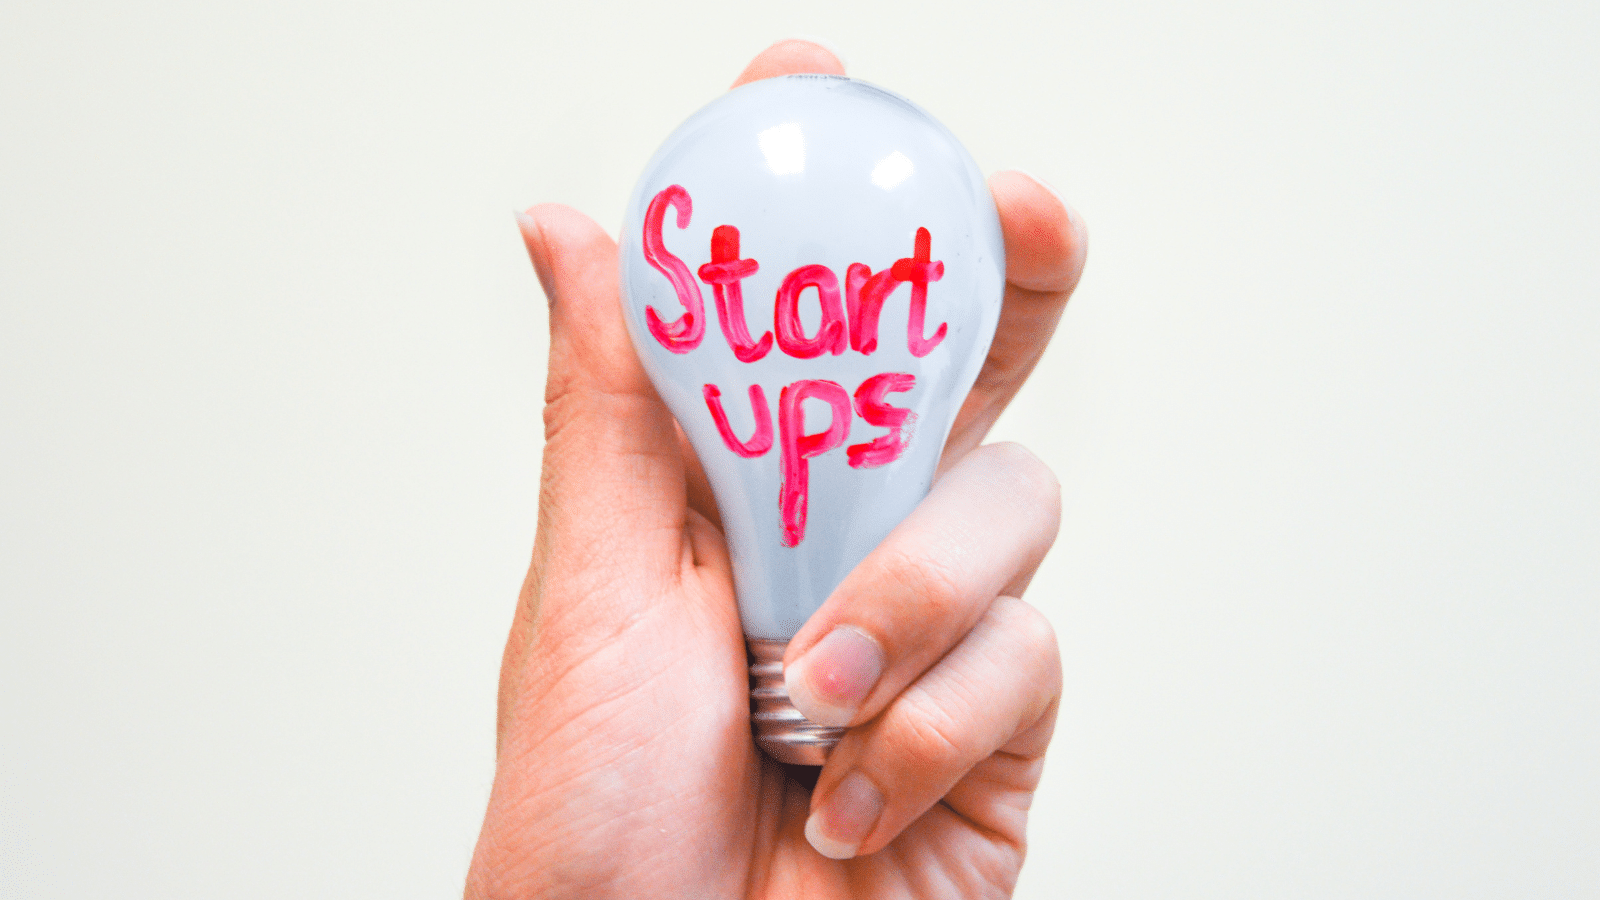 Startups that last – tips to set you apart